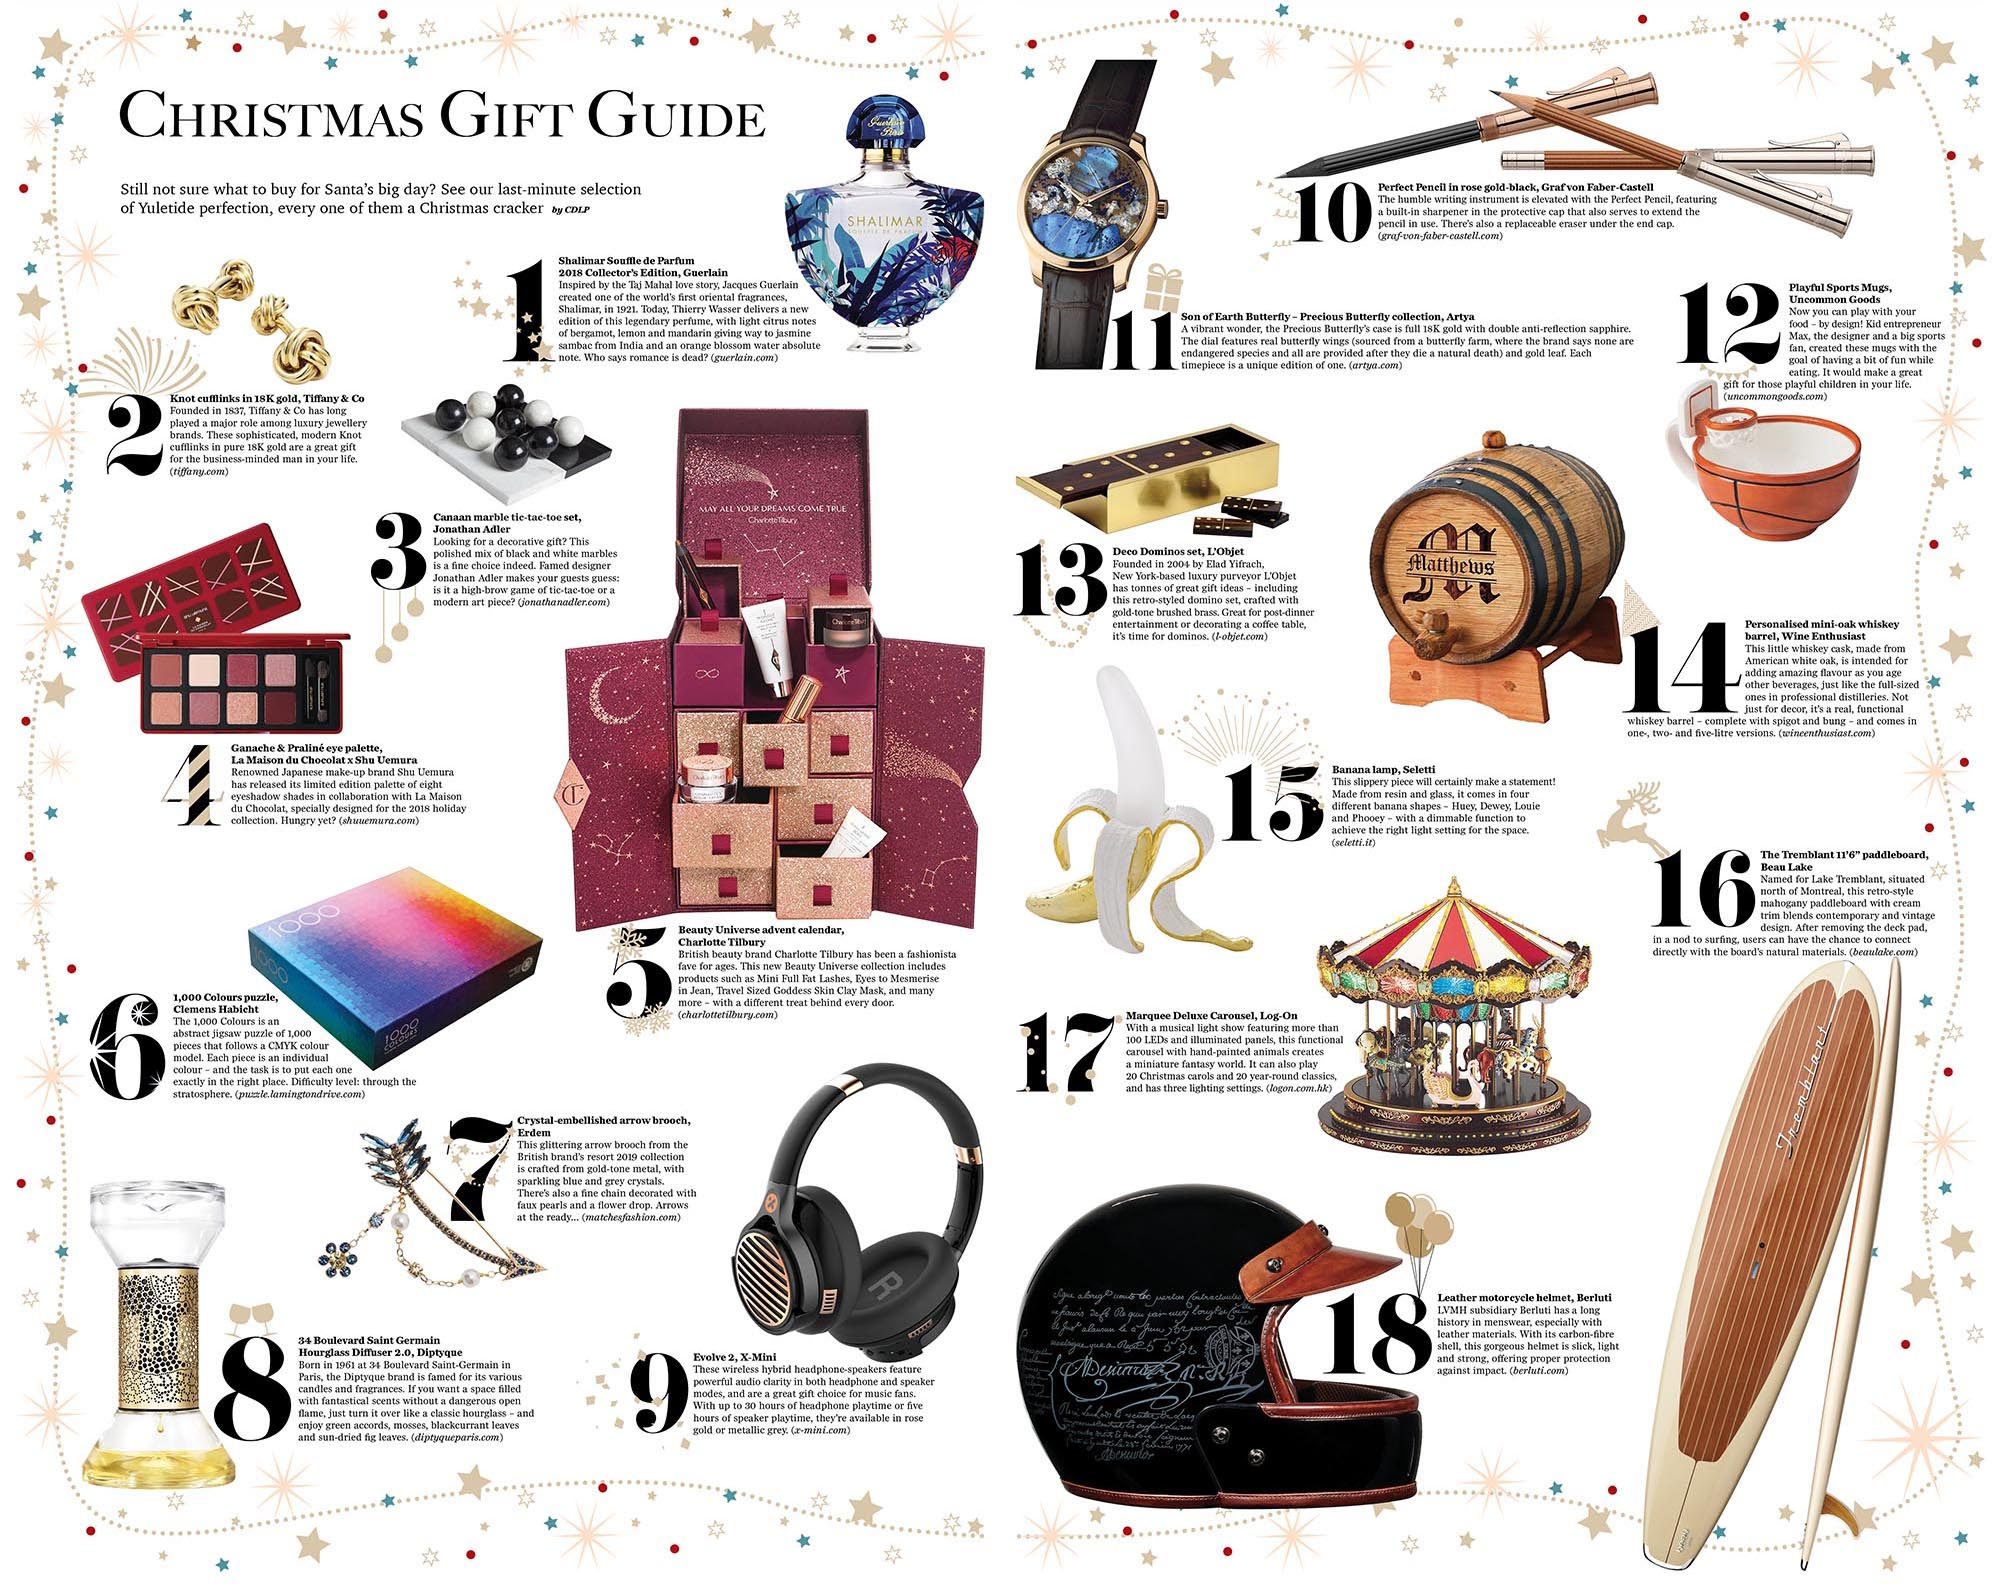 Christmas Gift Guide Layout.China Daily Lifestyle Premium